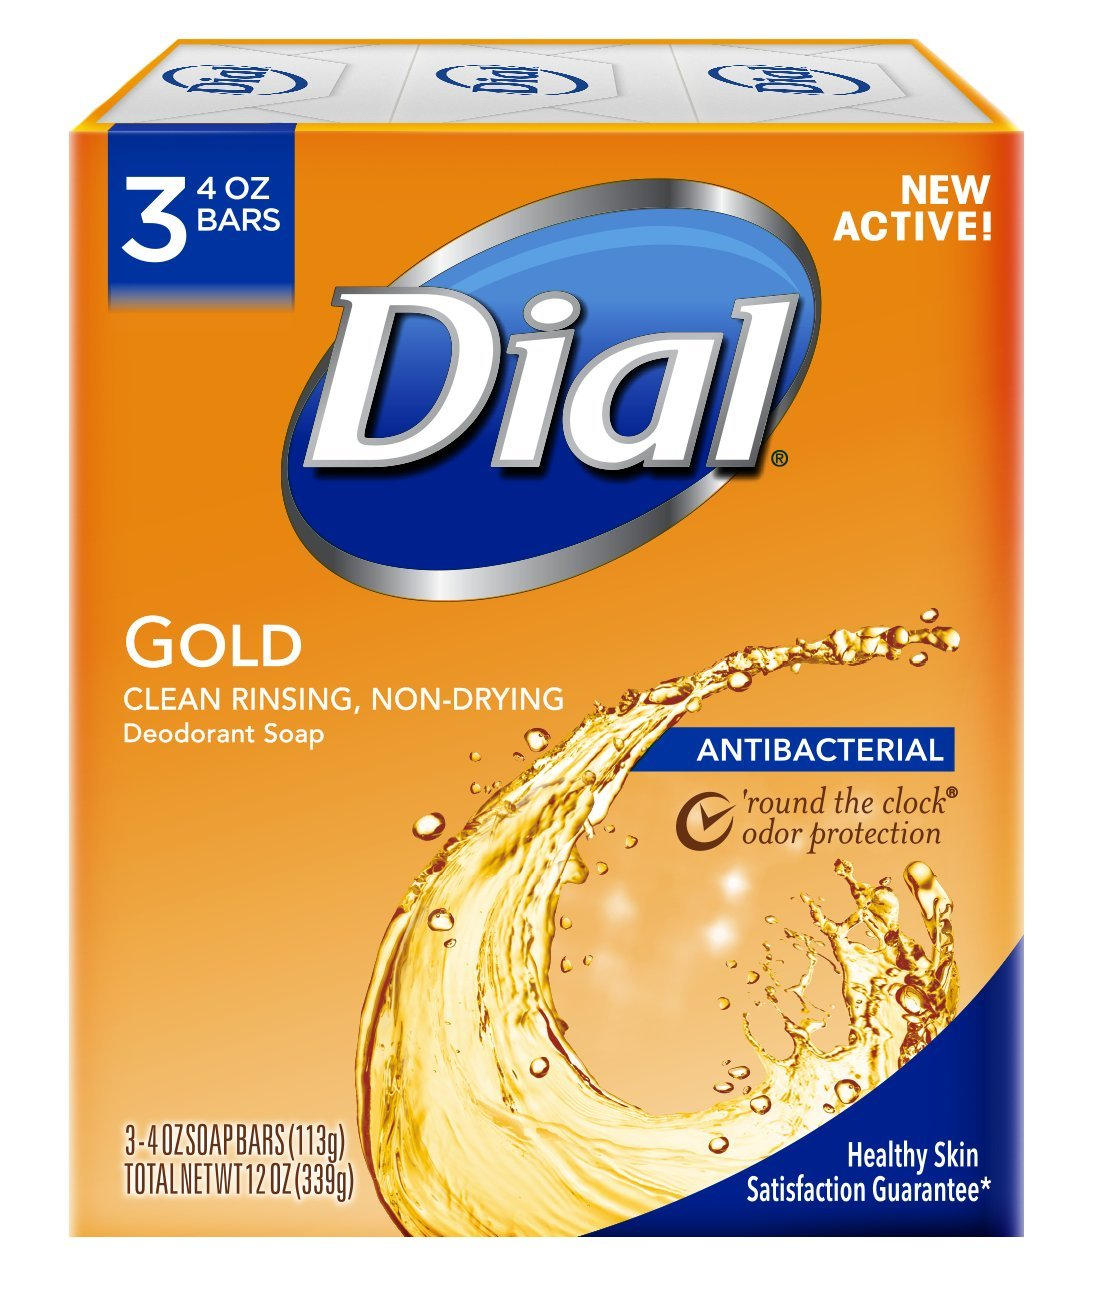 Dial Antibacterial Deodorant Soap, Gold, 4 Ounce (Pack of 3)